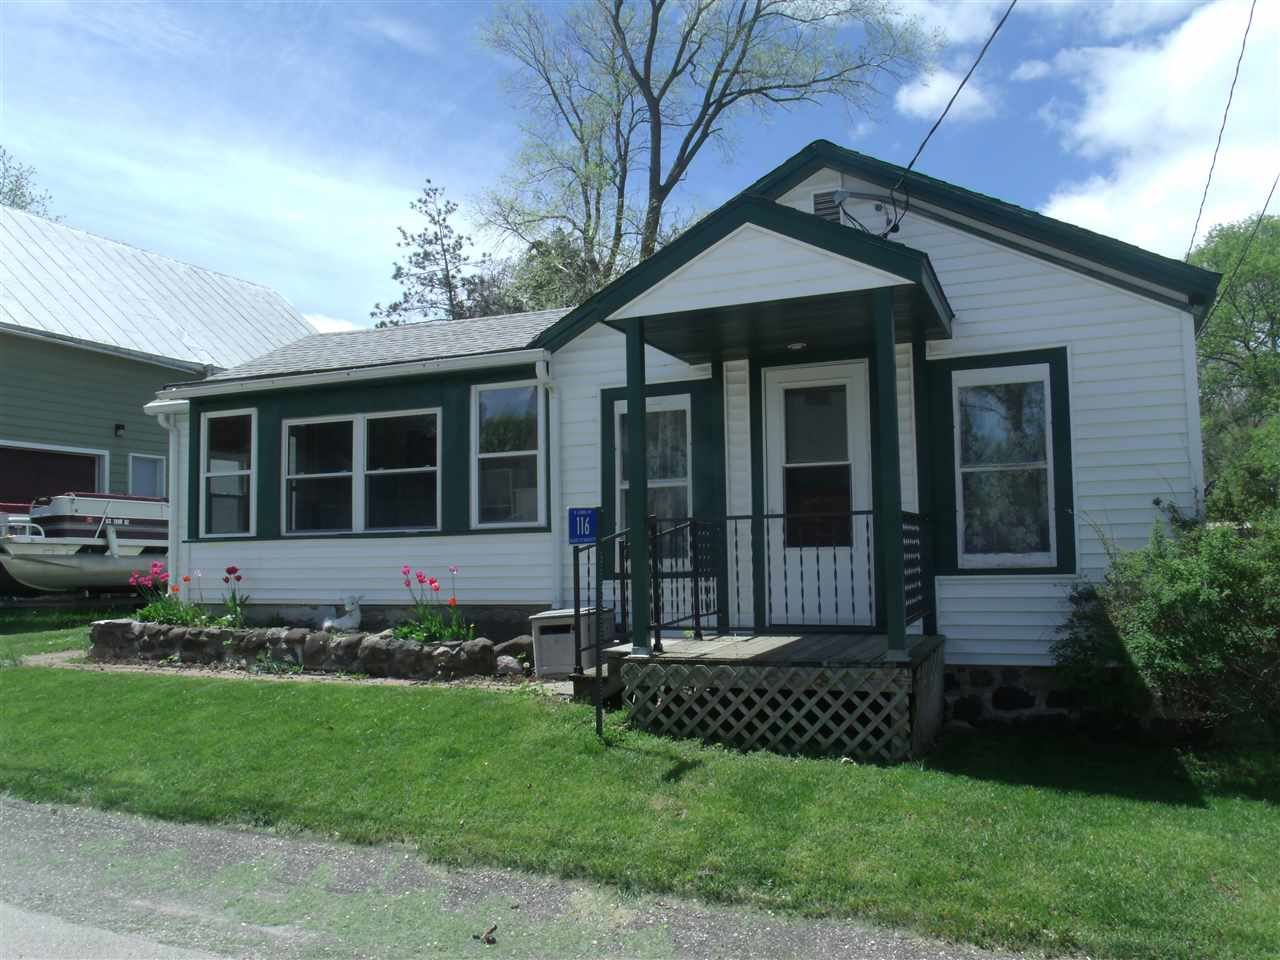 116 S Lyons St, Marquette, WI 53947 - #: 1912978